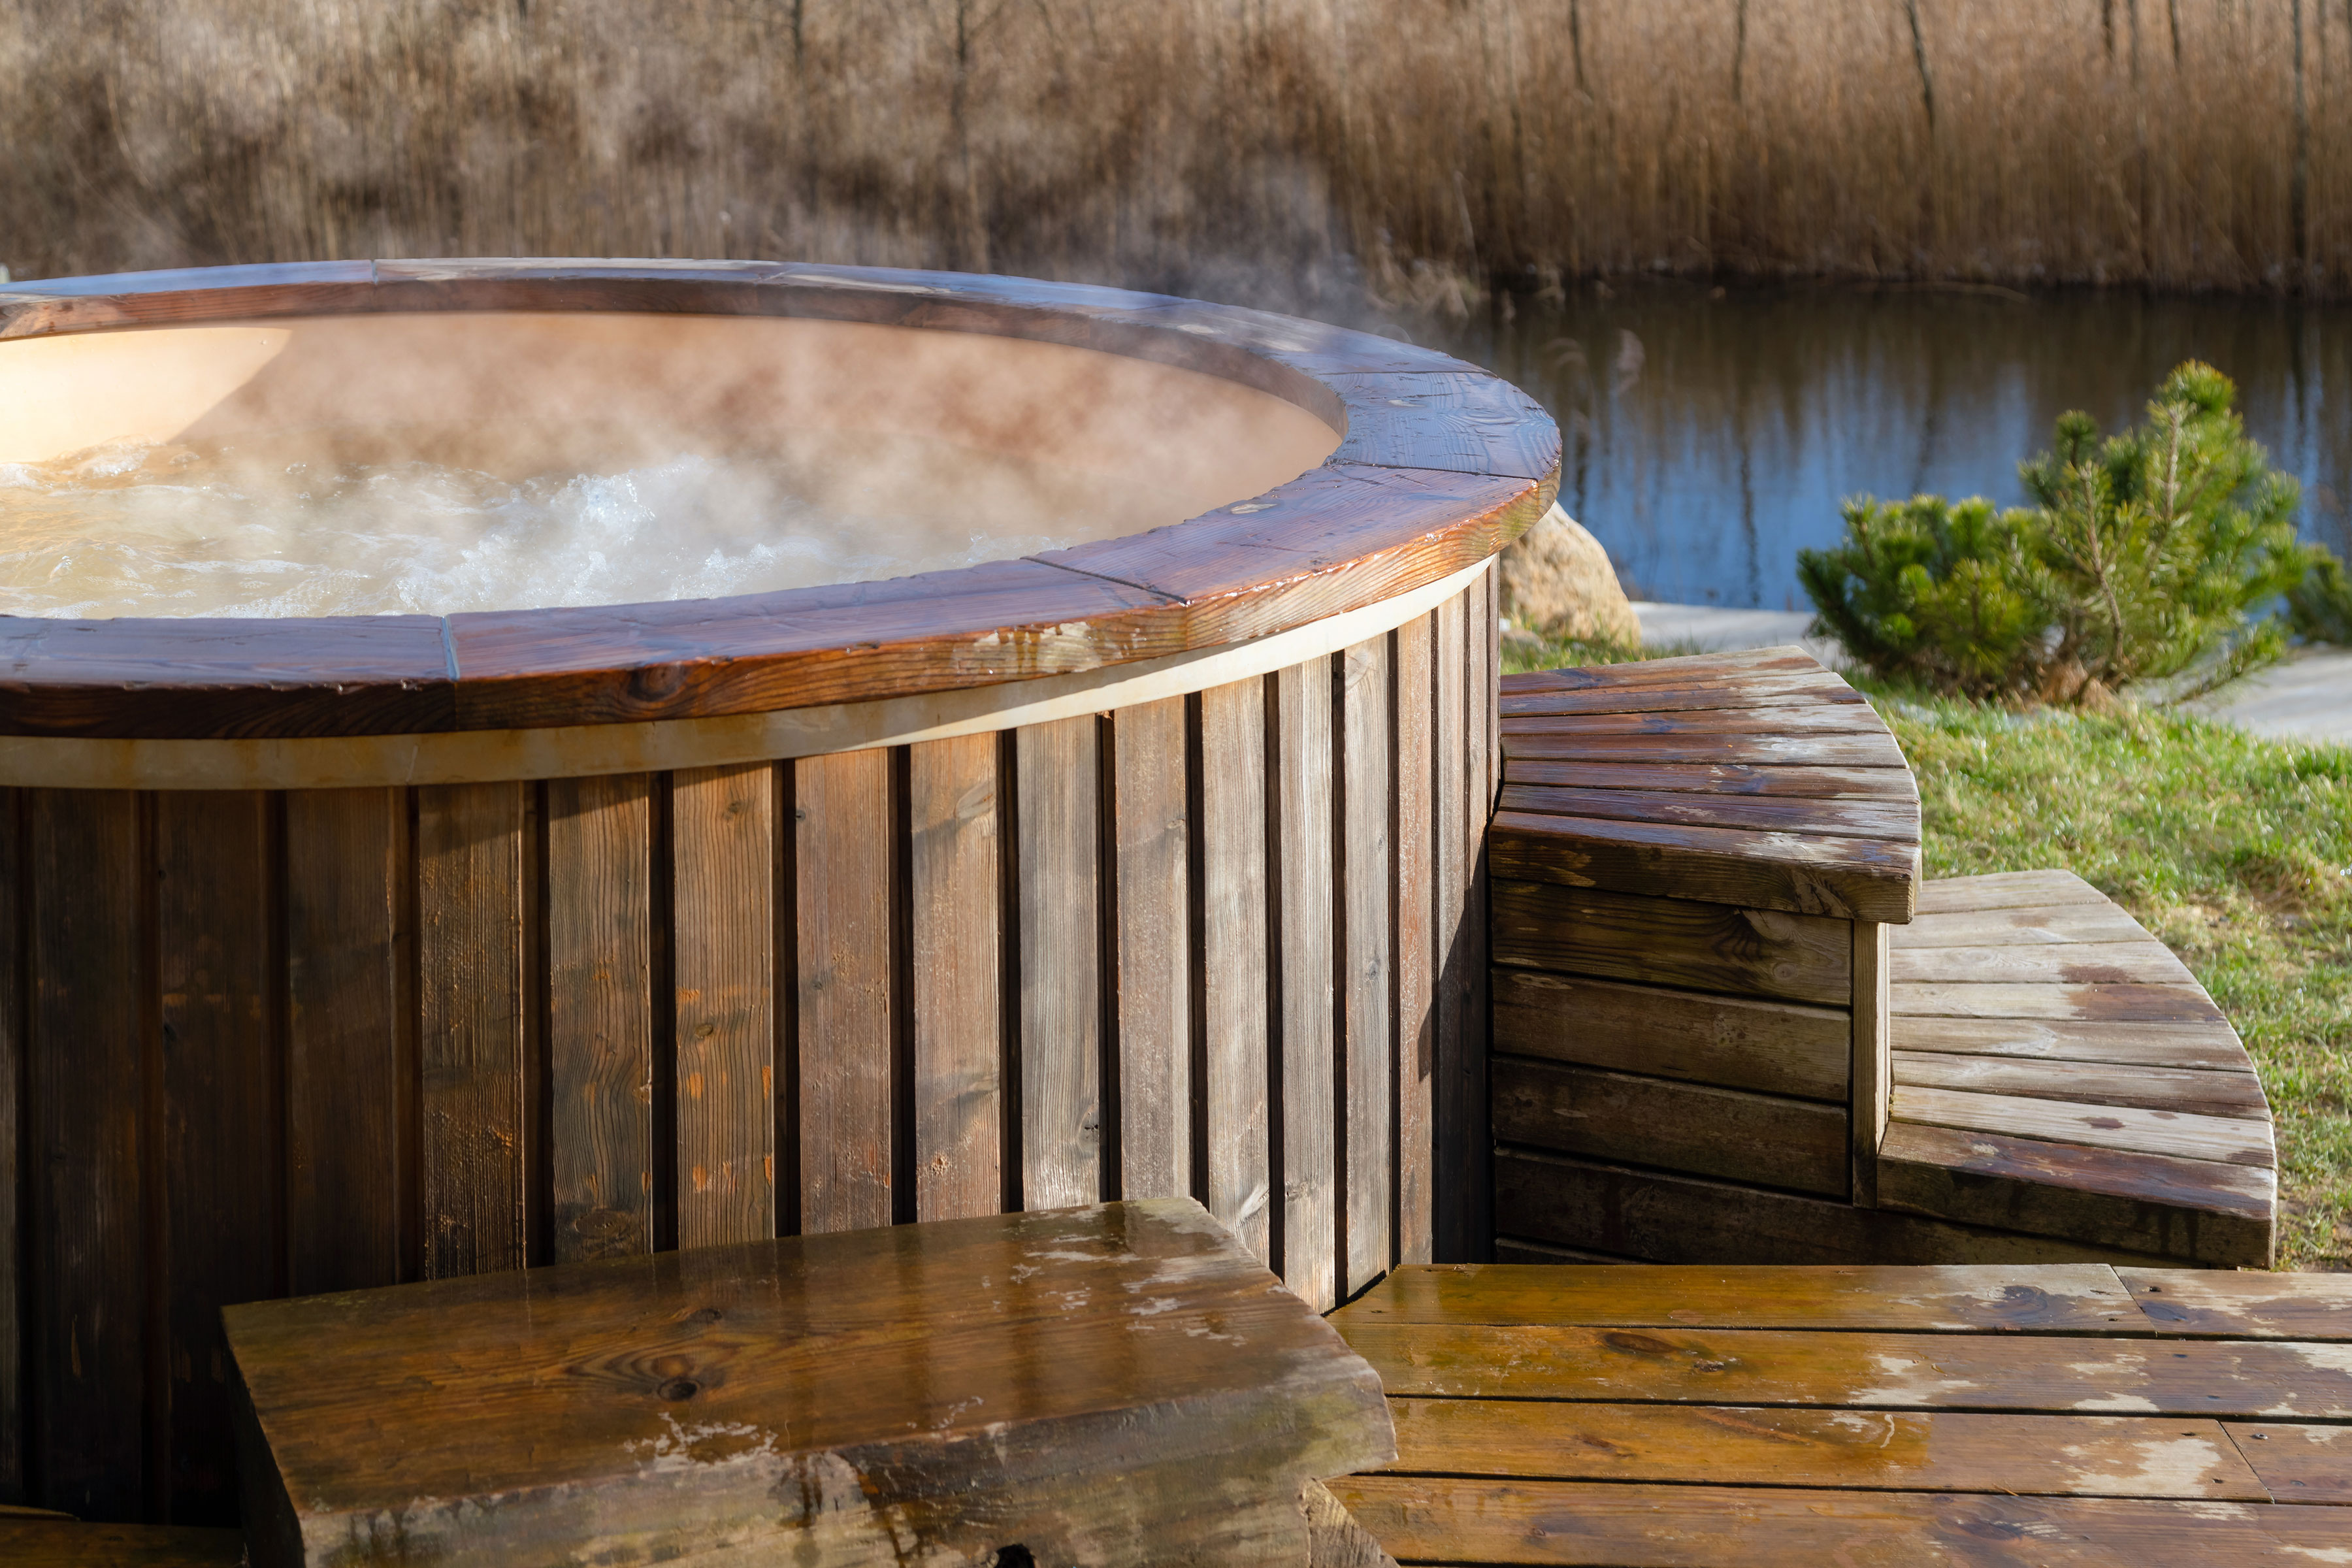 A round, wooden hot tub bubbles and steams next to a wet deck.